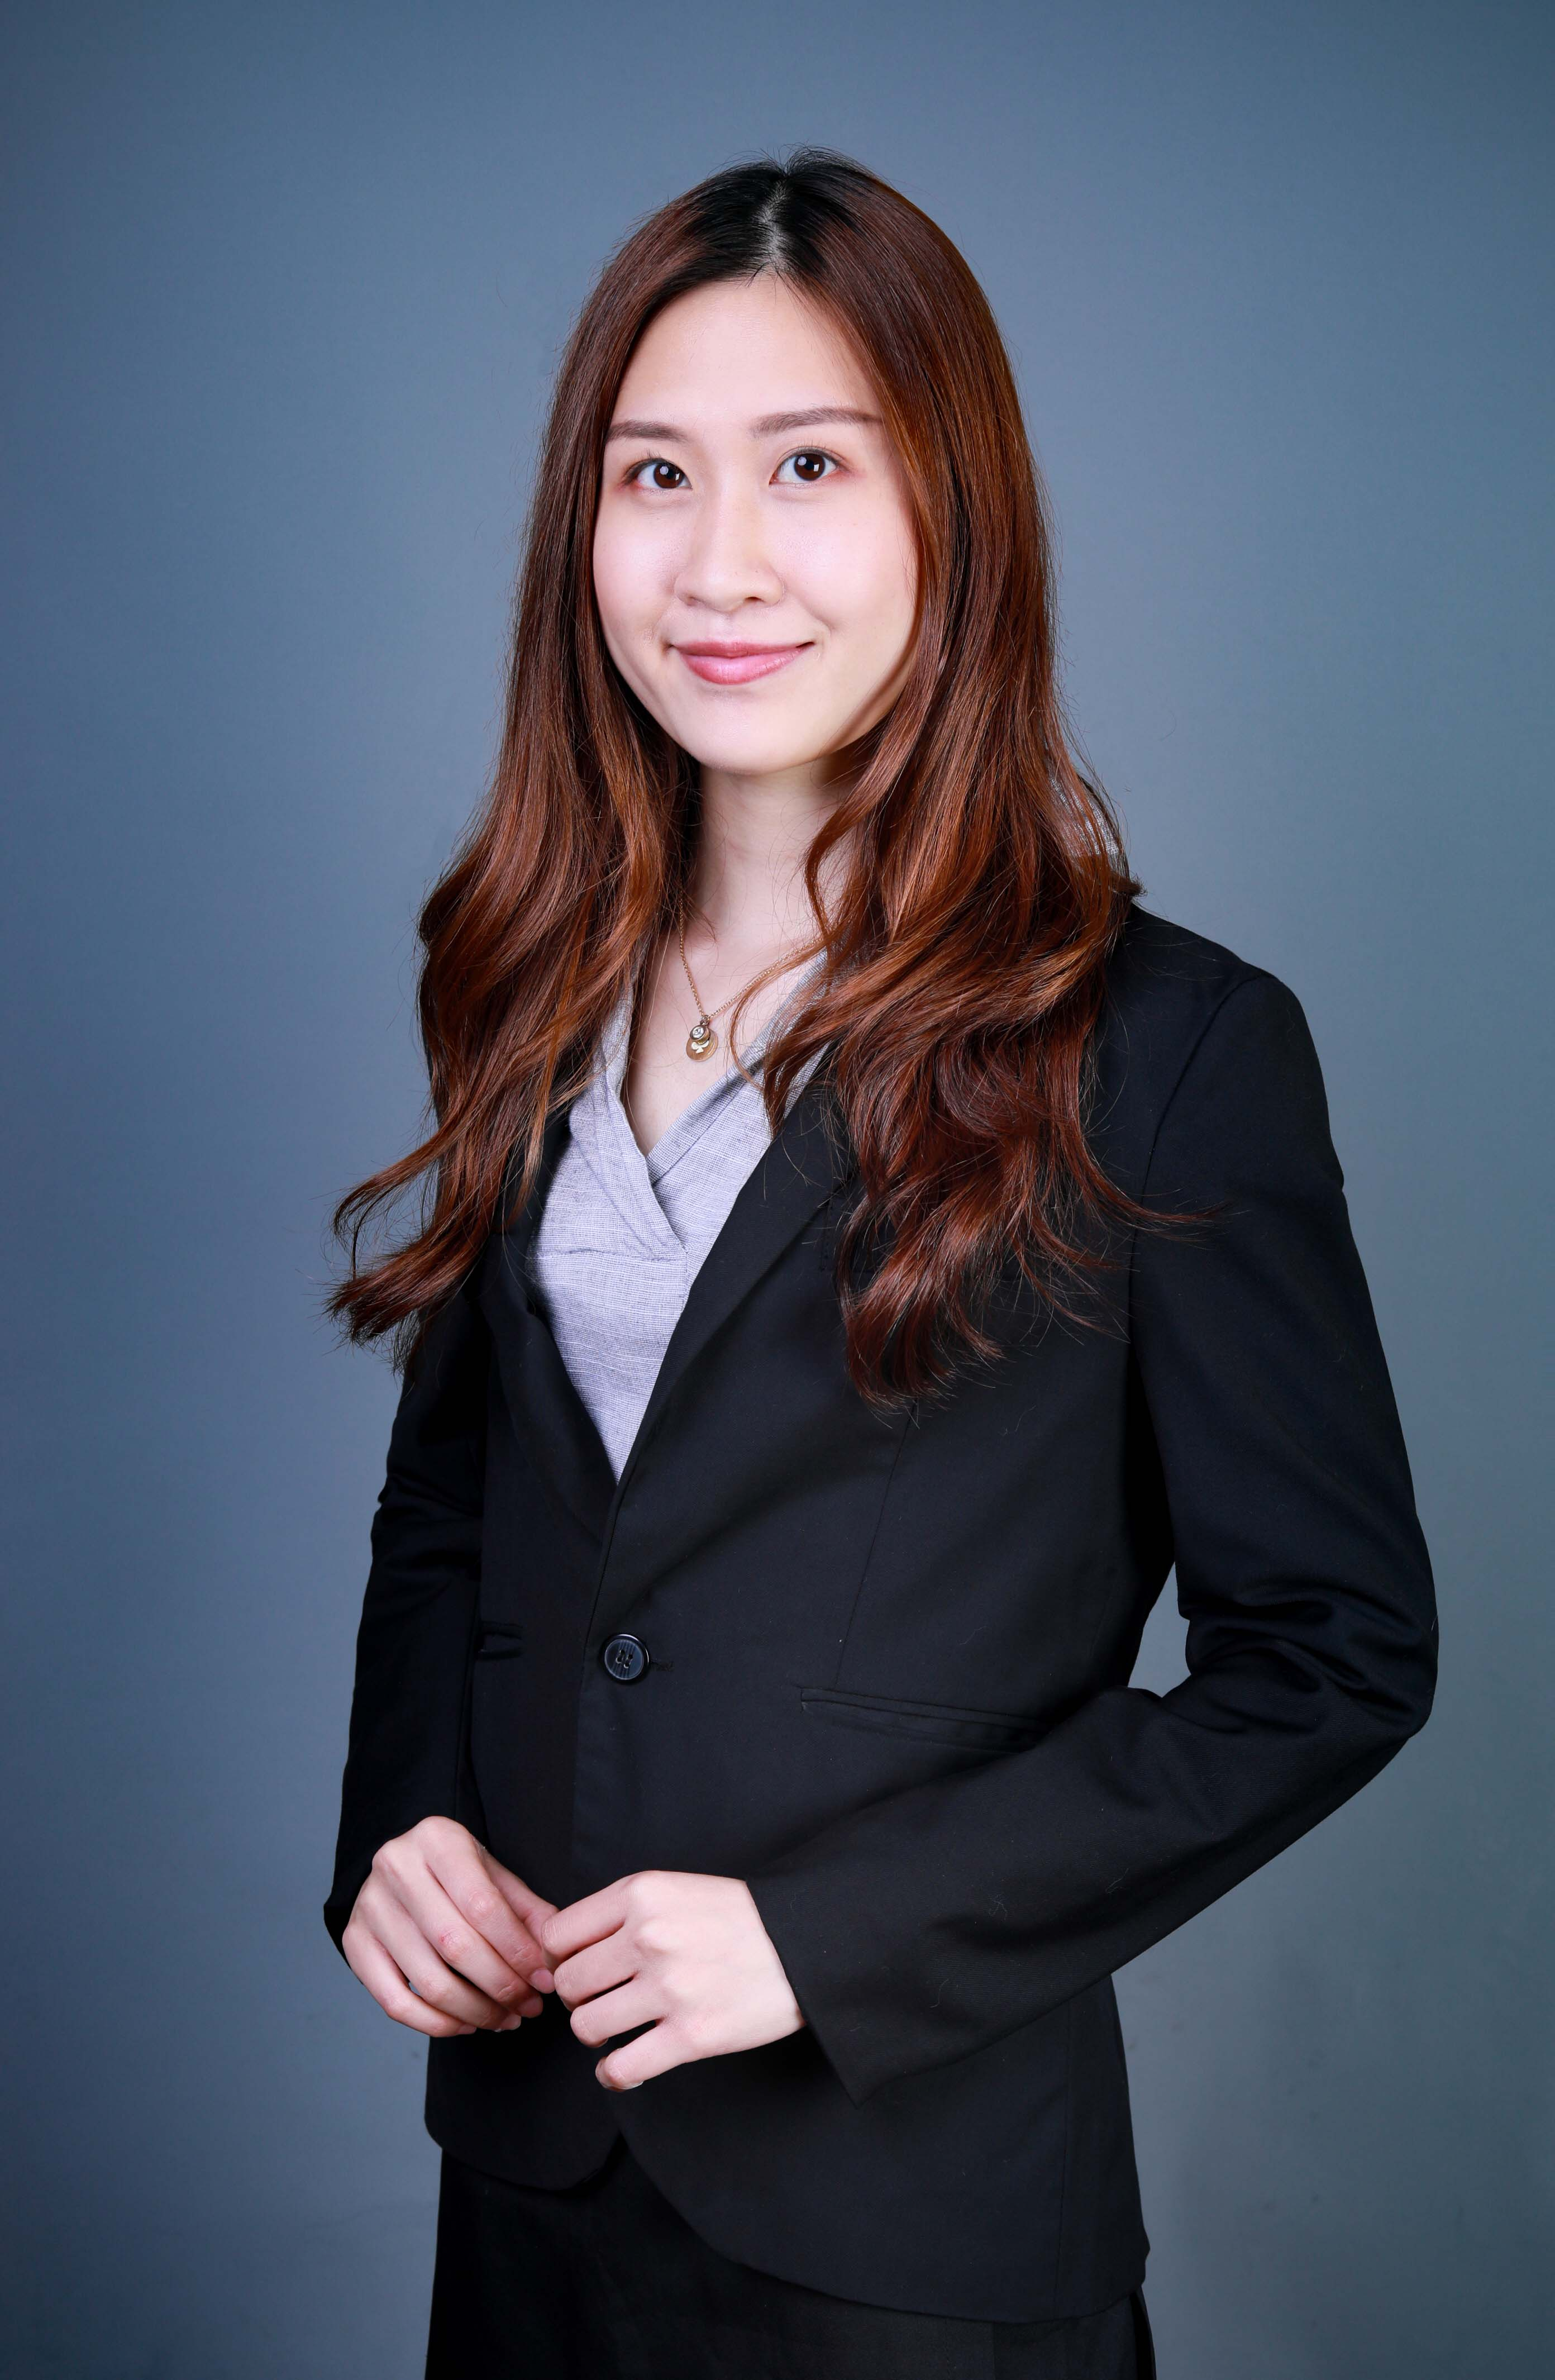 專業形象照 corporate headshot smart portrait cv photo icefire studio hk